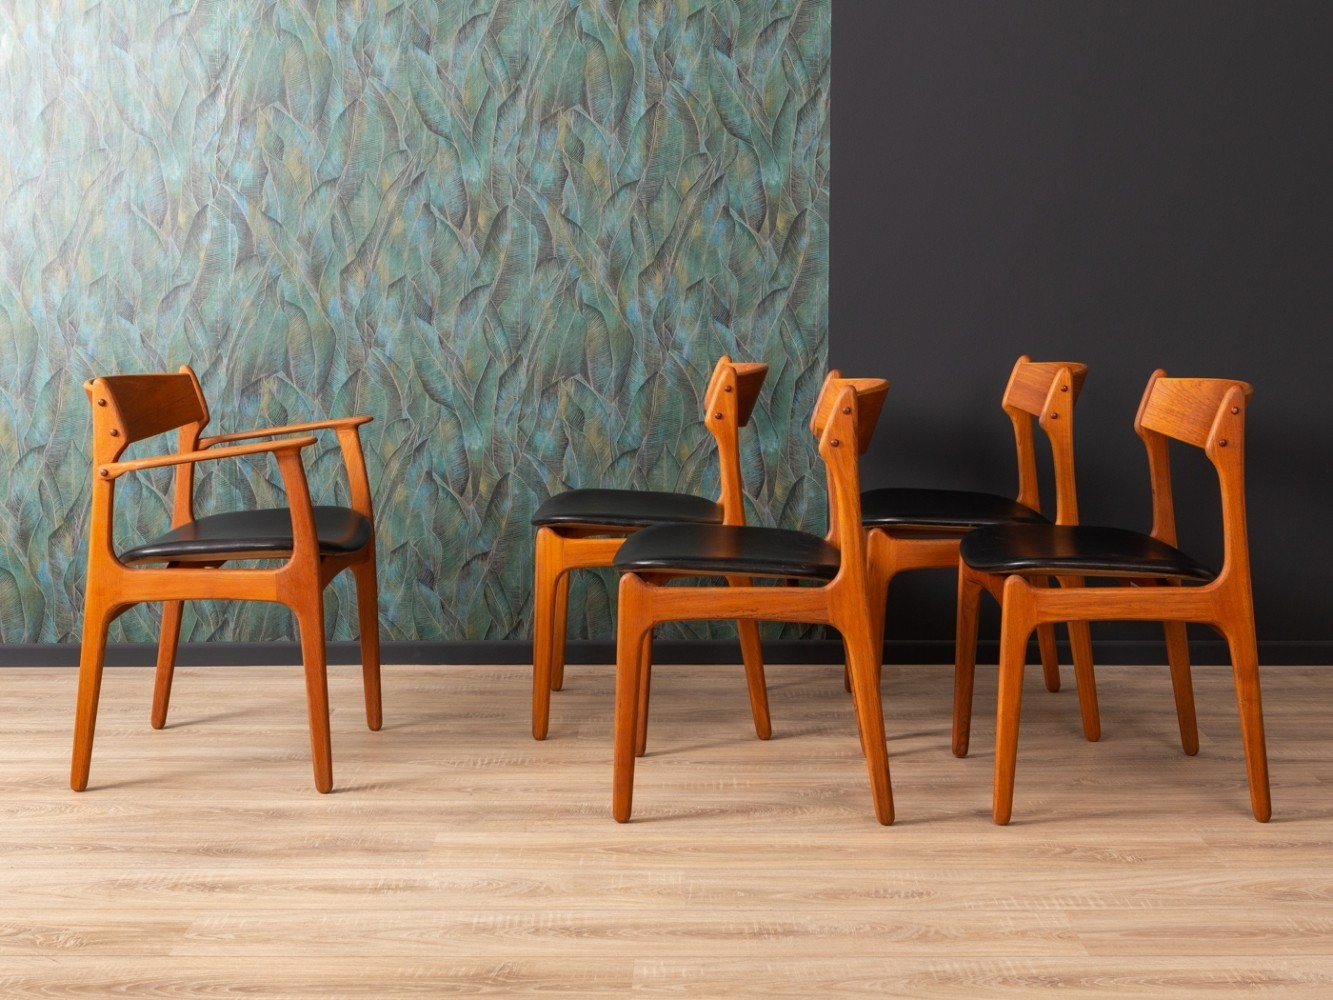 Set of 5 Danish dining chairs by Eric Buch for O.D. Møbler, 1950s